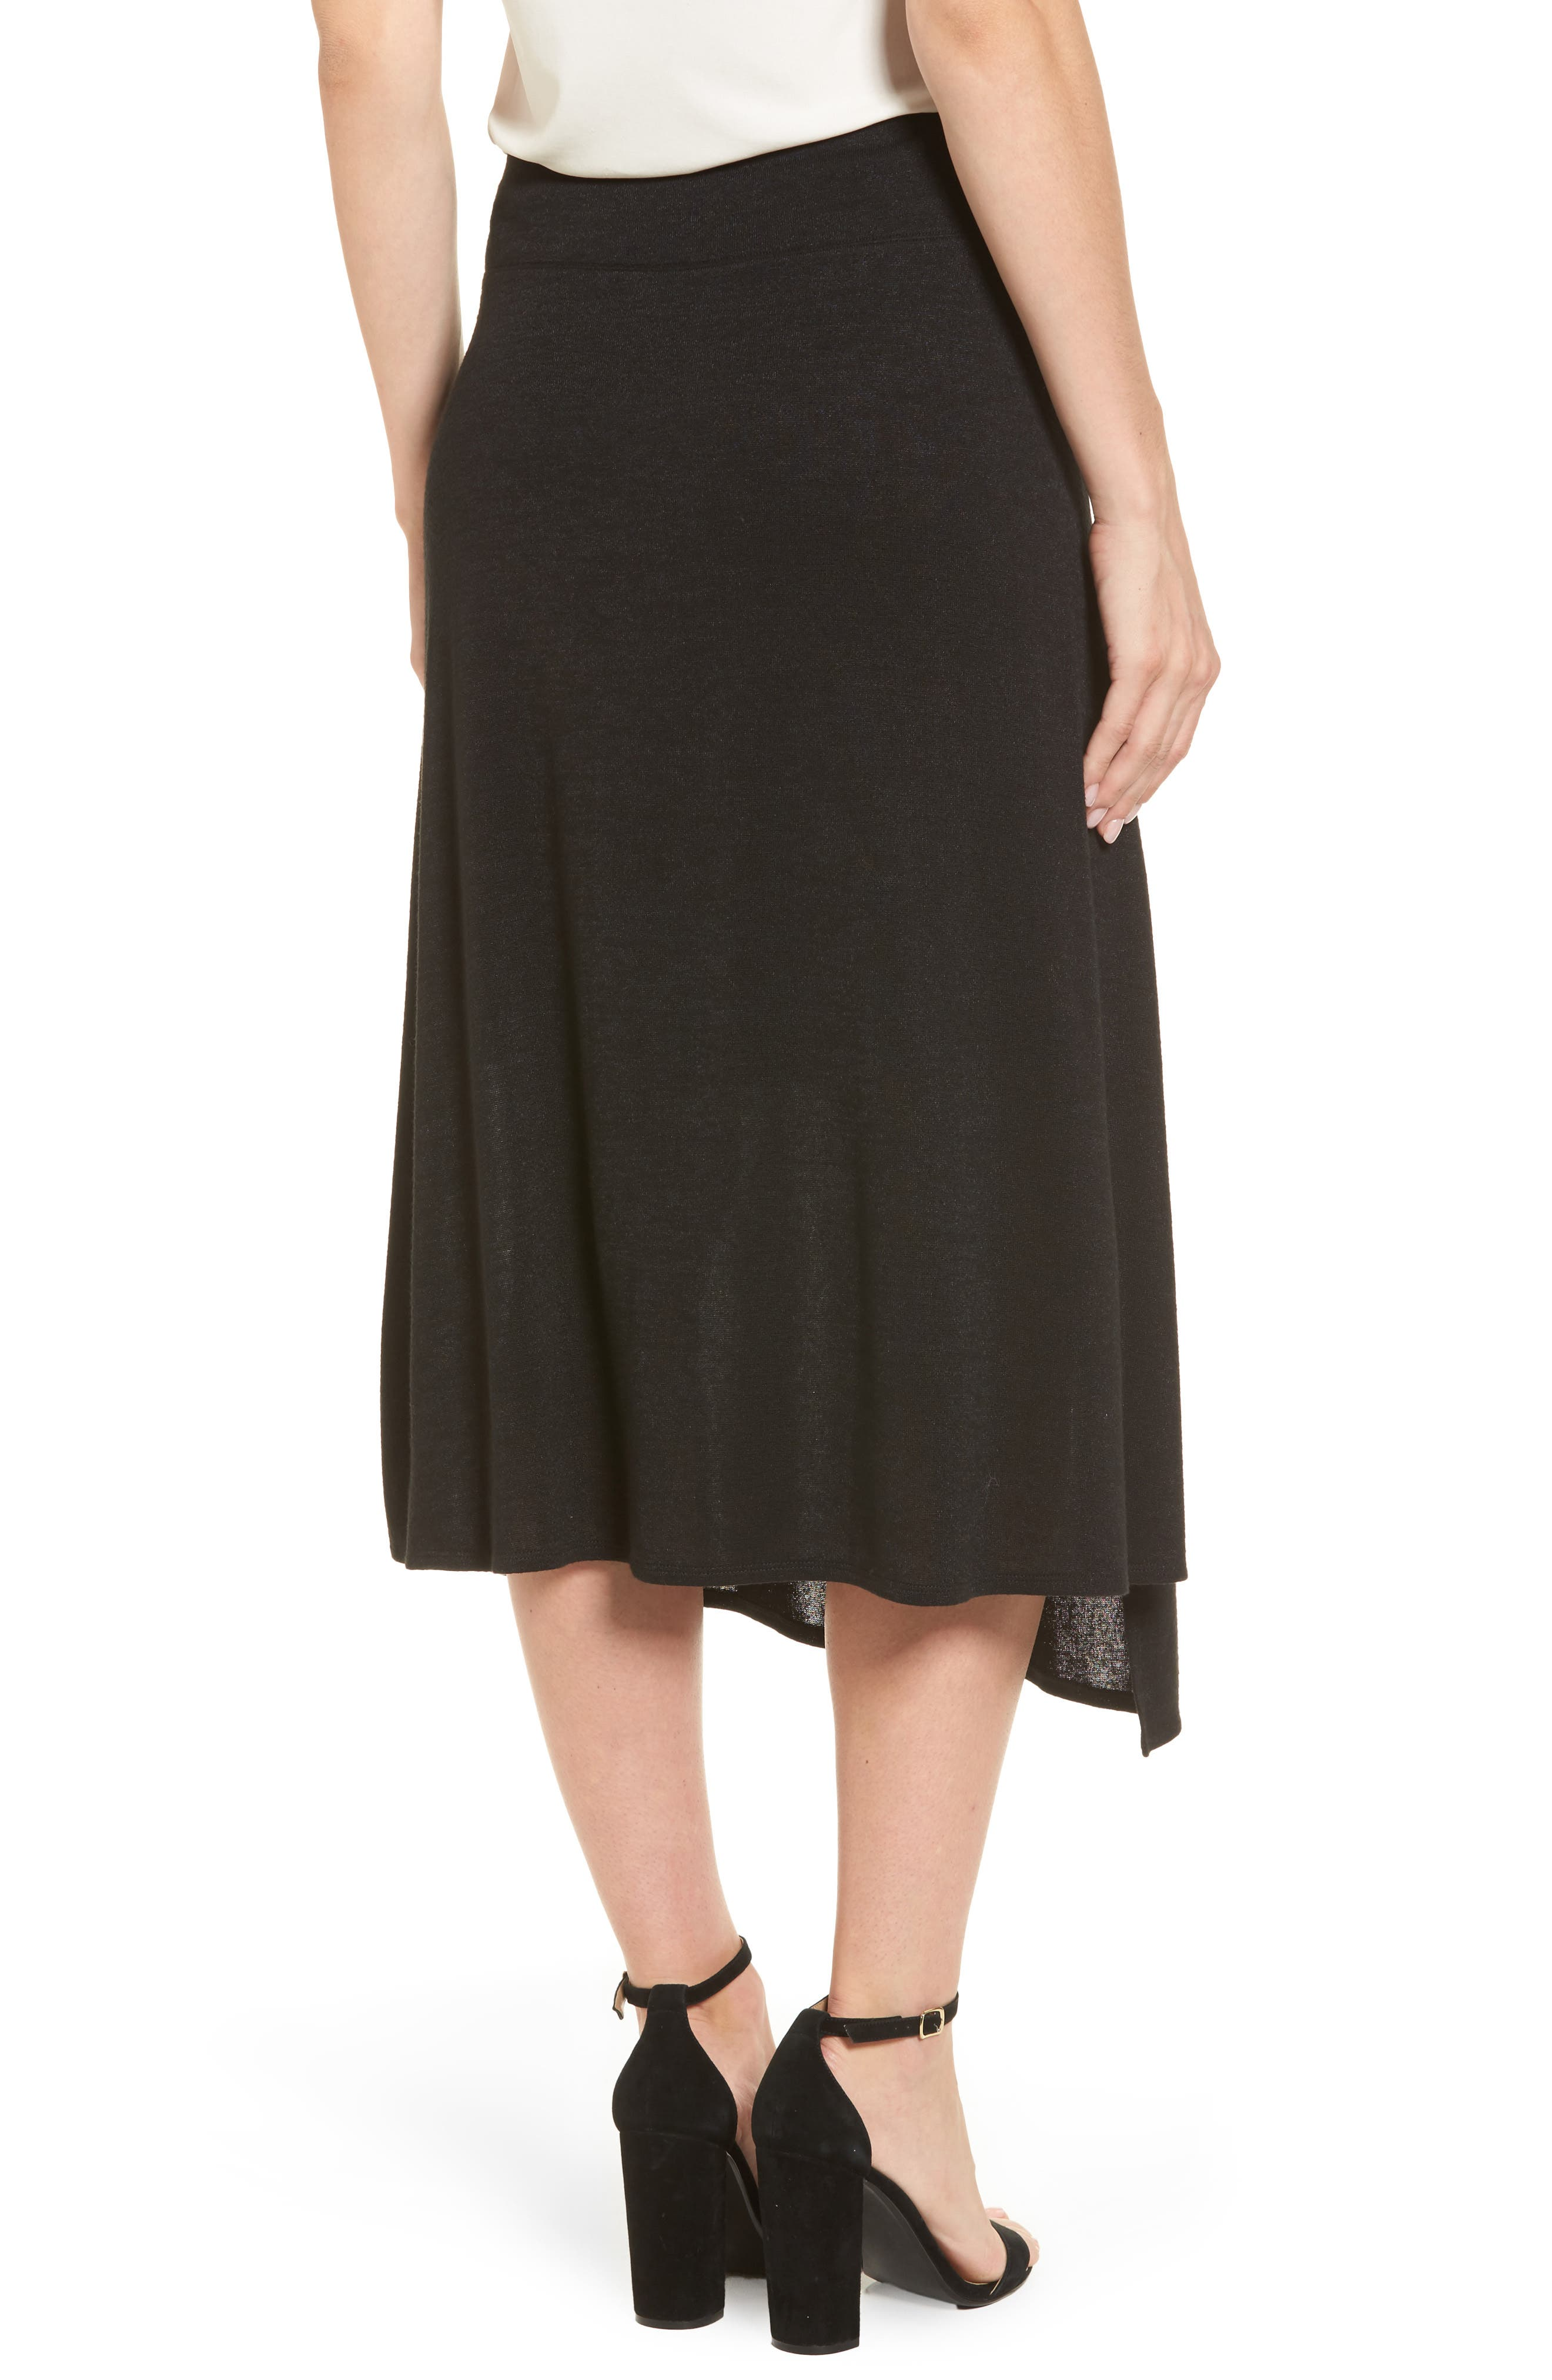 Nic + Zoe Every Occasion Faux Wrap Skirt,                             Alternate thumbnail 2, color,                             Black Onyx